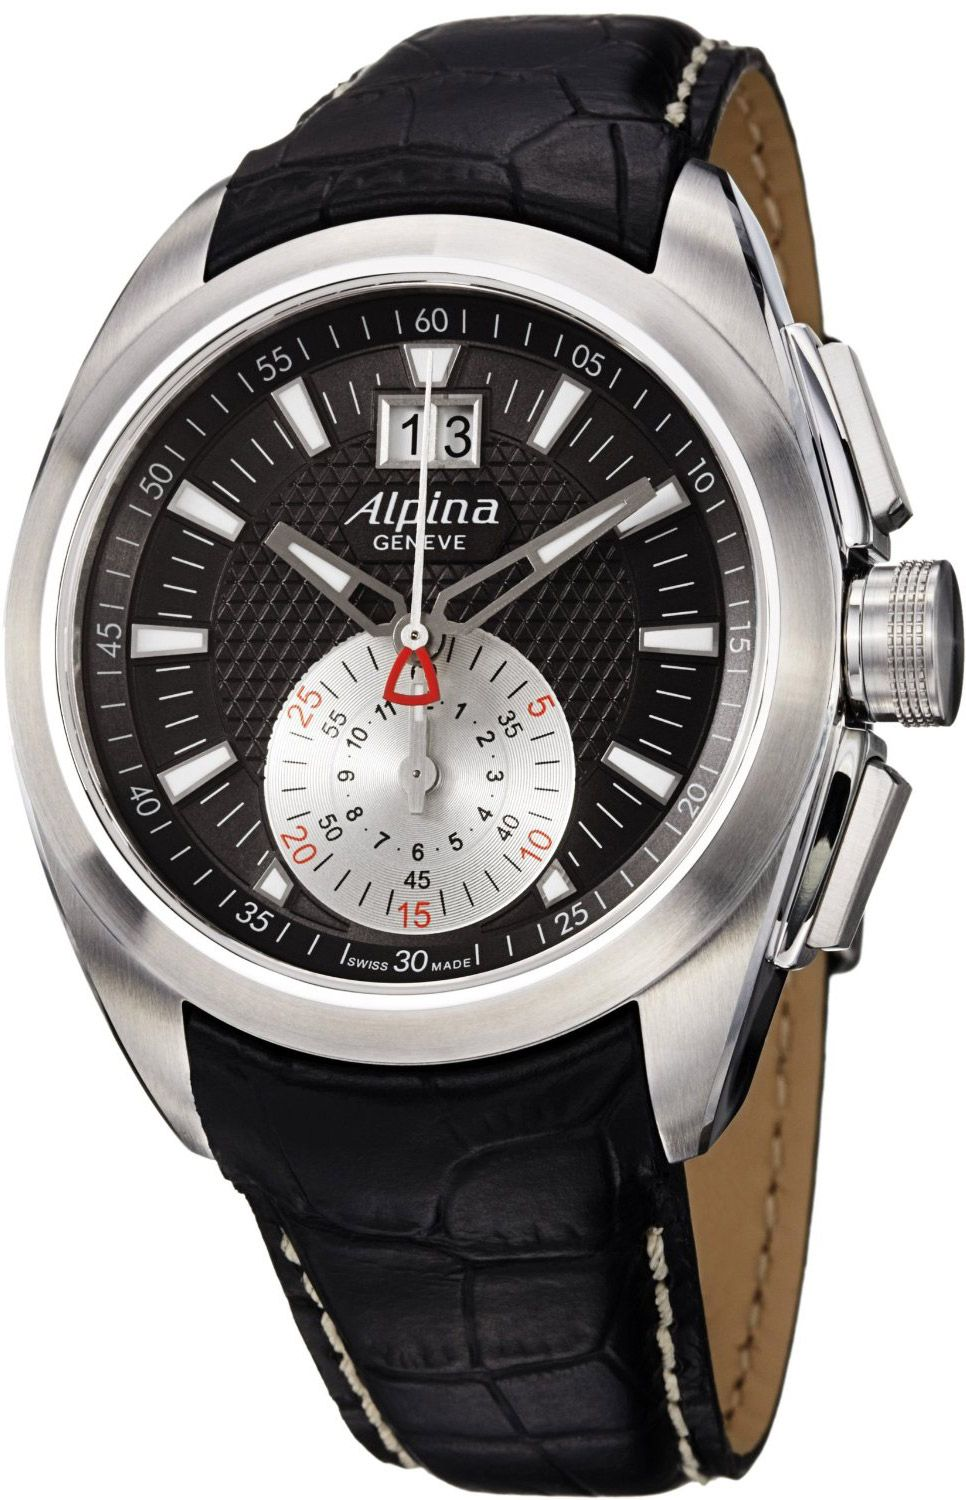 Alpina Club Chronograph Mens Watch Model Al 353bs4rc6 Mens Watches Affordable Alpina Watches Watches For Men